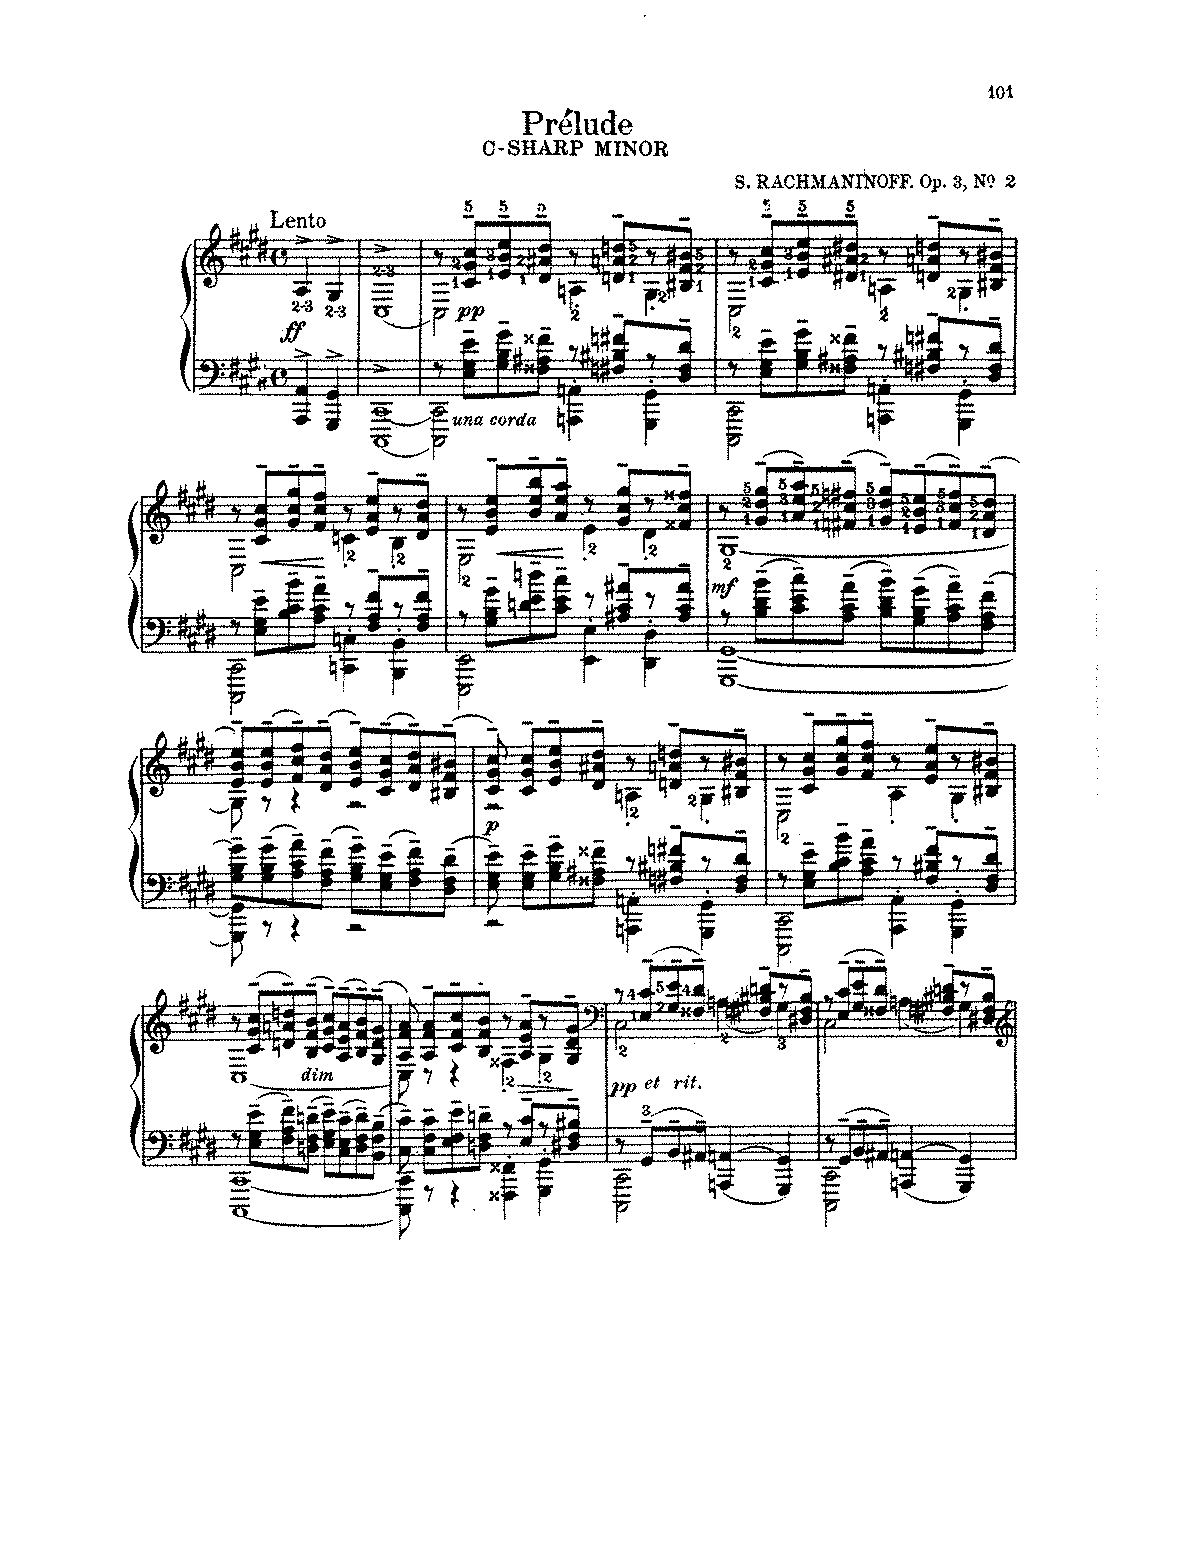 Prelude Op.3, No.2 by Rachmaninoff.pdf